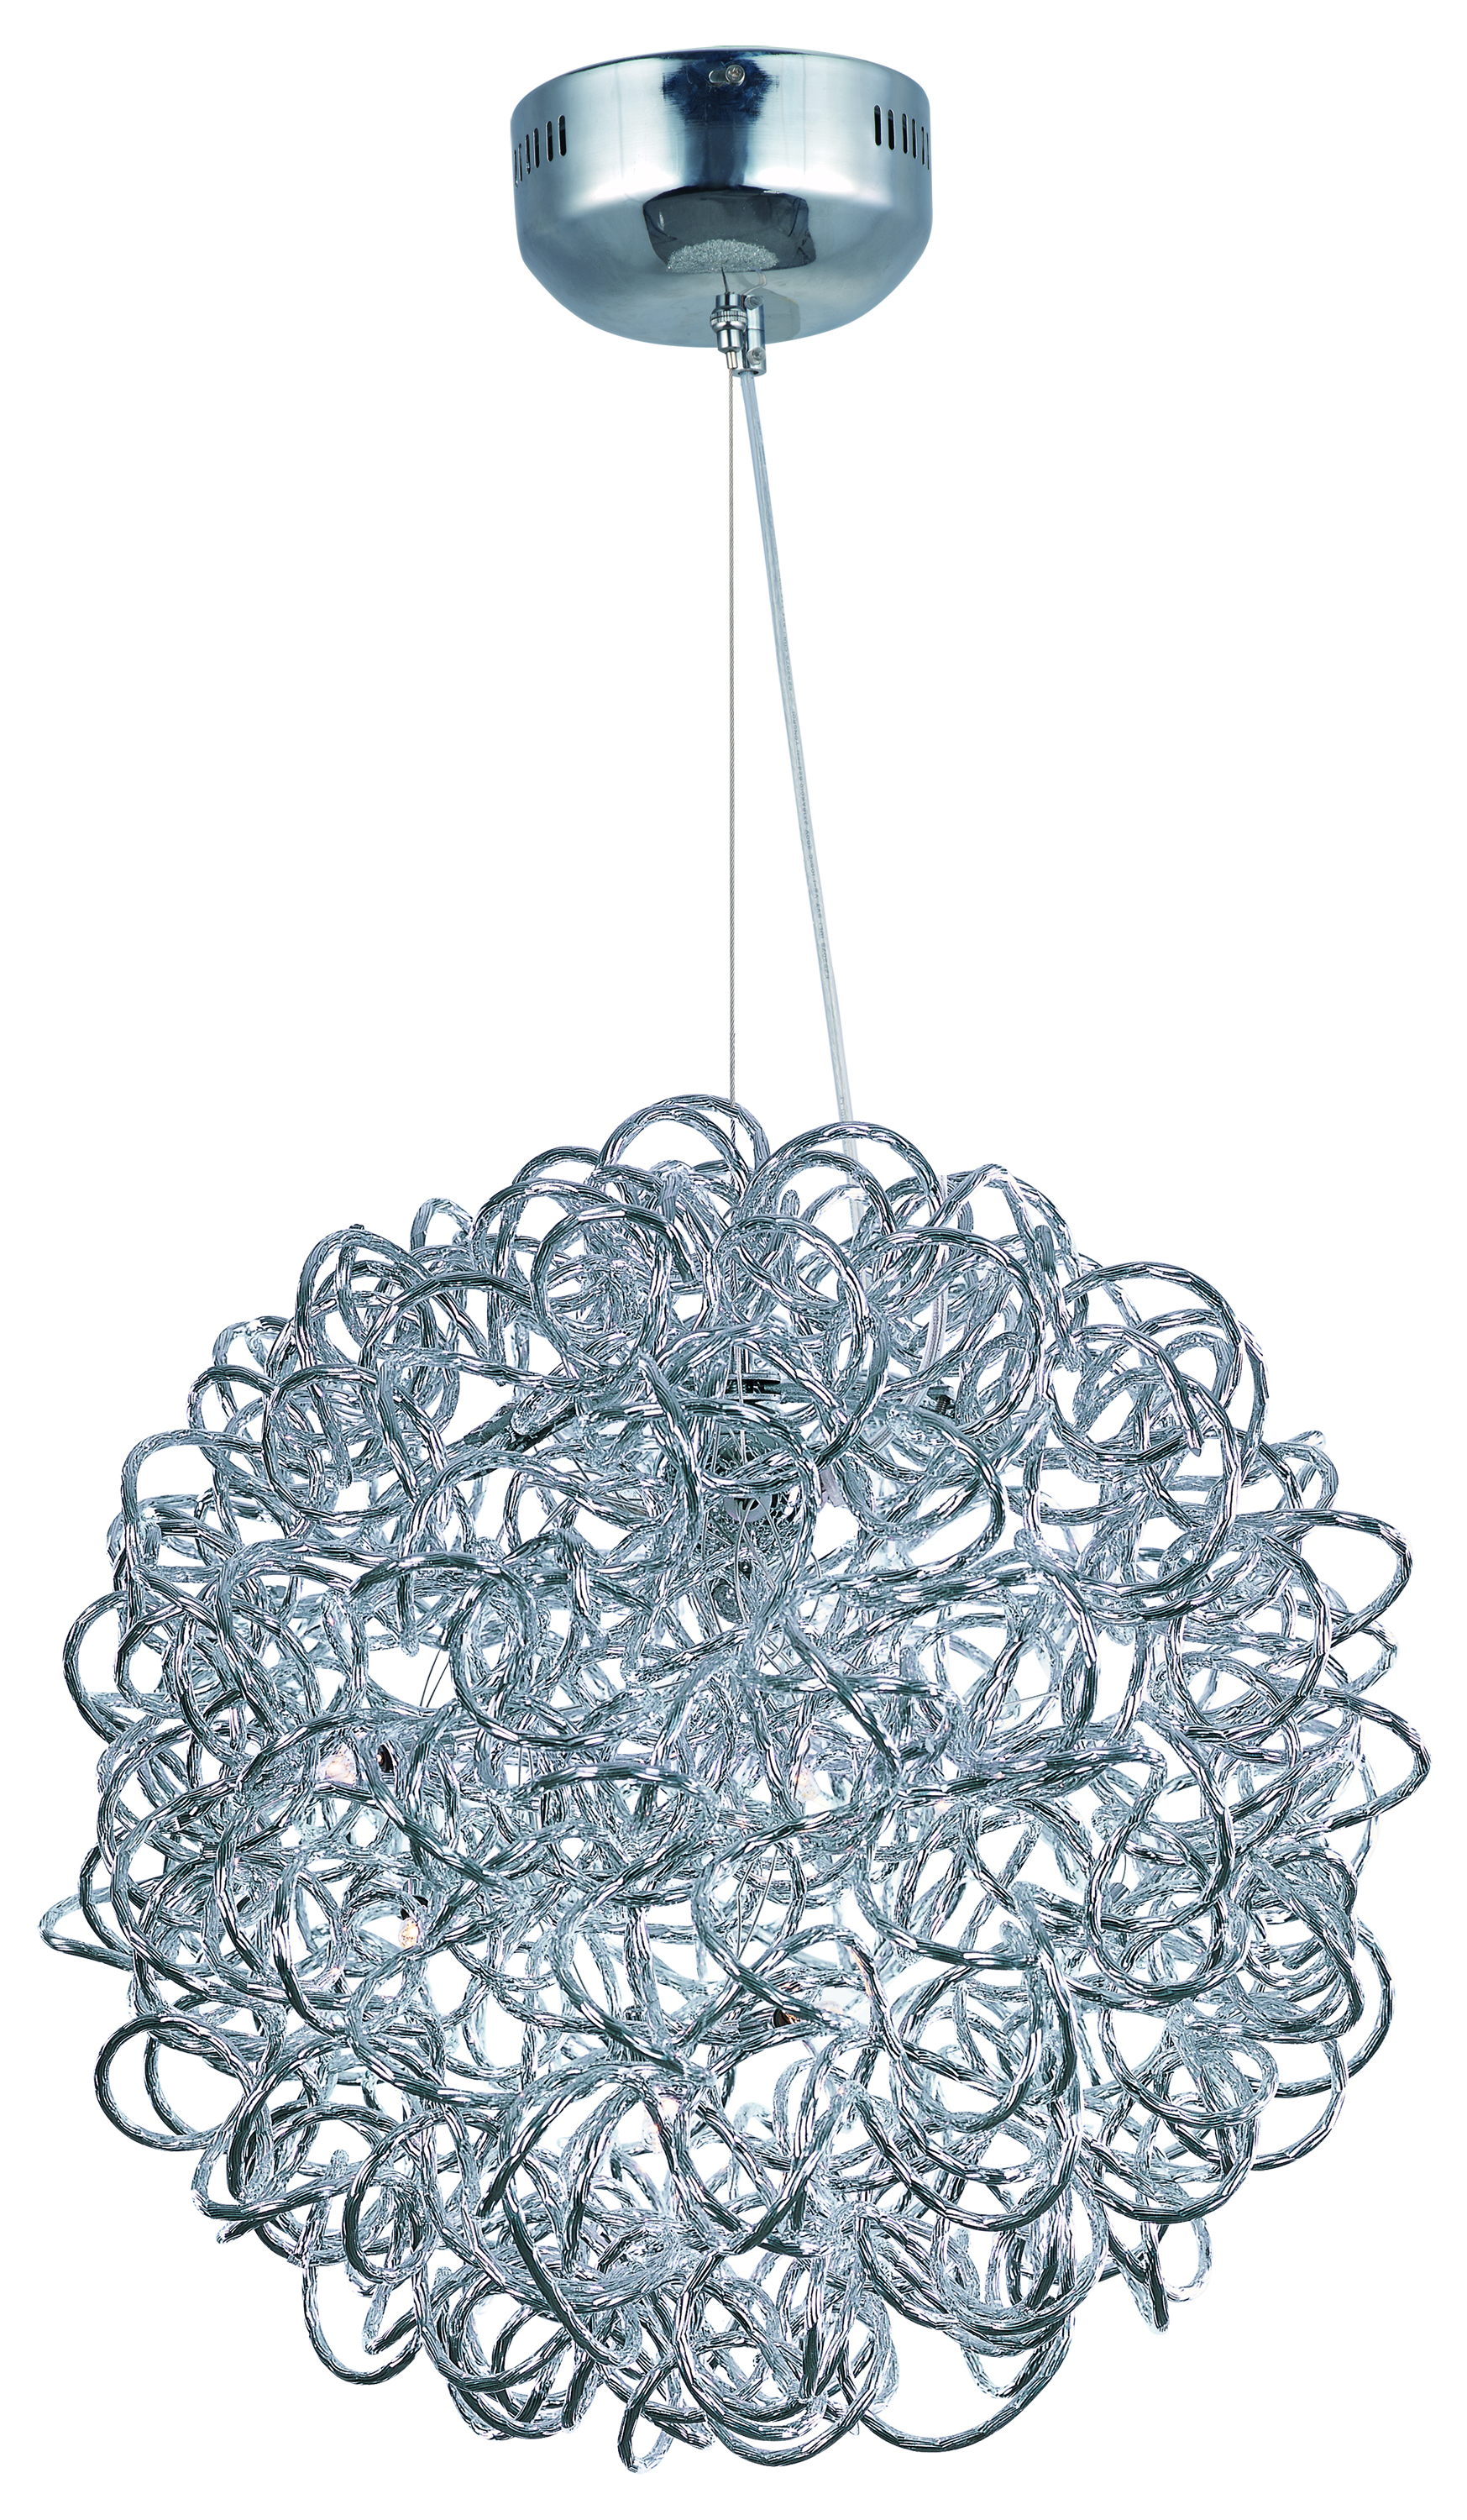 dazed 8 light pendant single pendant maxim lighting dazed · dazed 8 light pendant